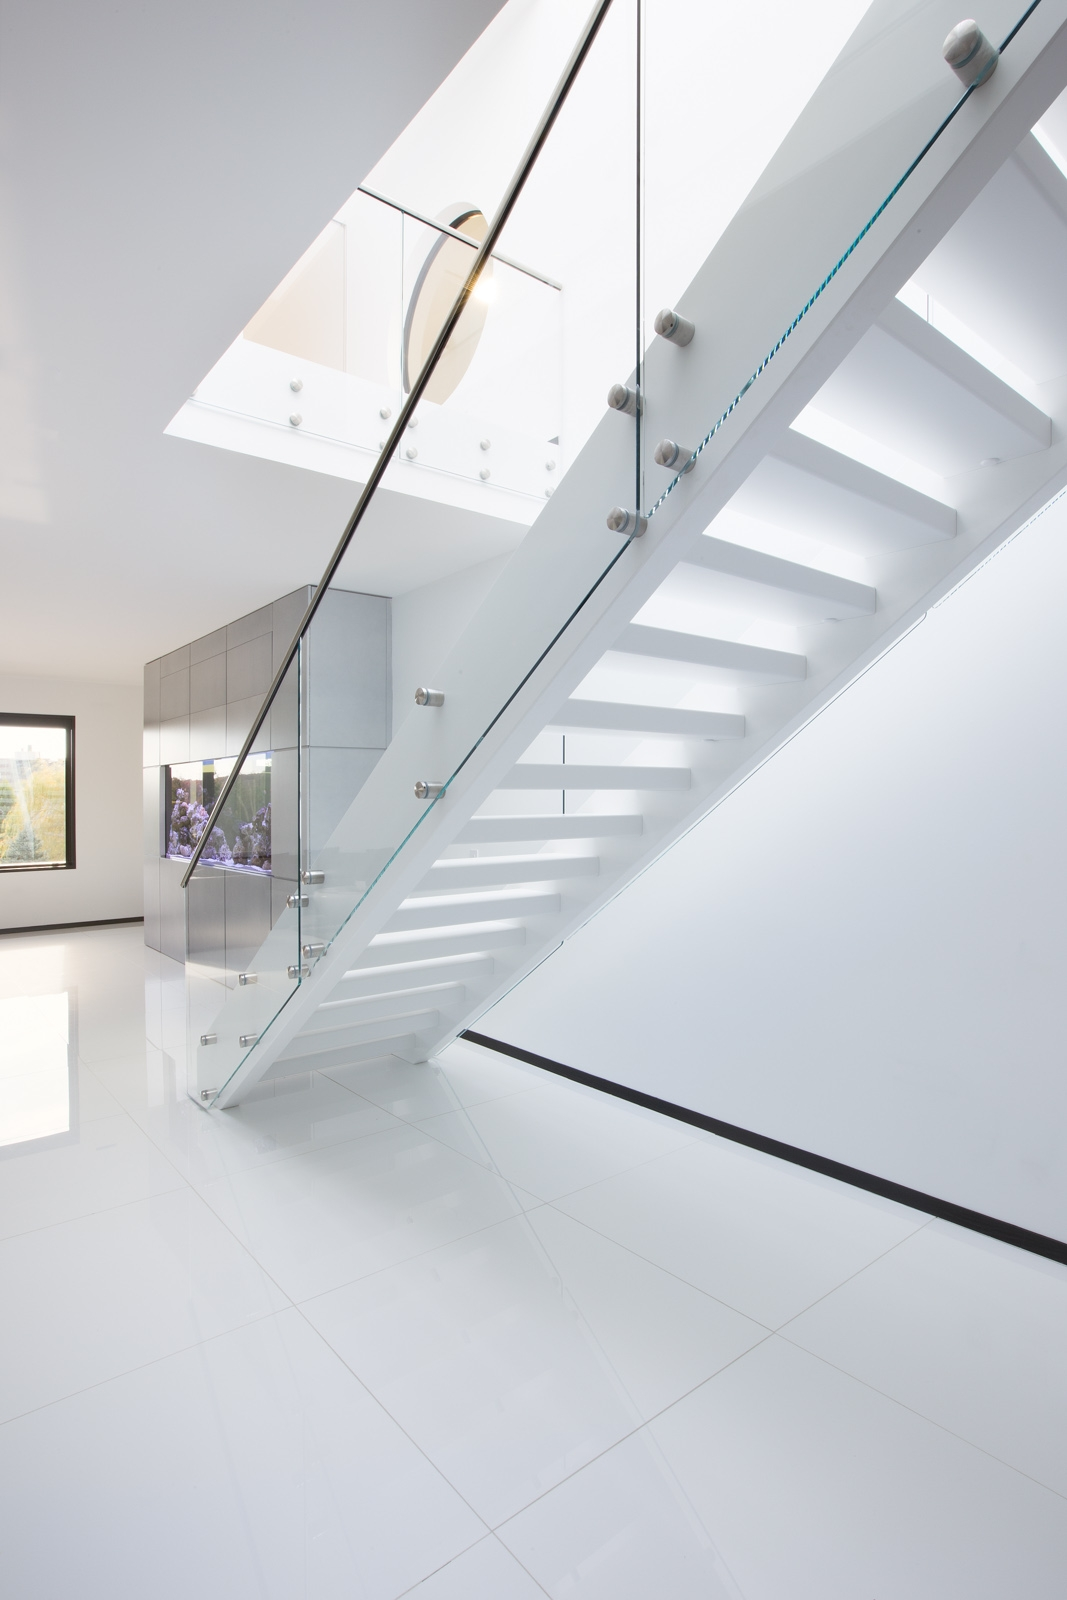 Modern White Staircase Design On Architizer | White And Glass Staircase | Before And After | American White Oak | Luxurious | High End Glass | White Handrail Treads